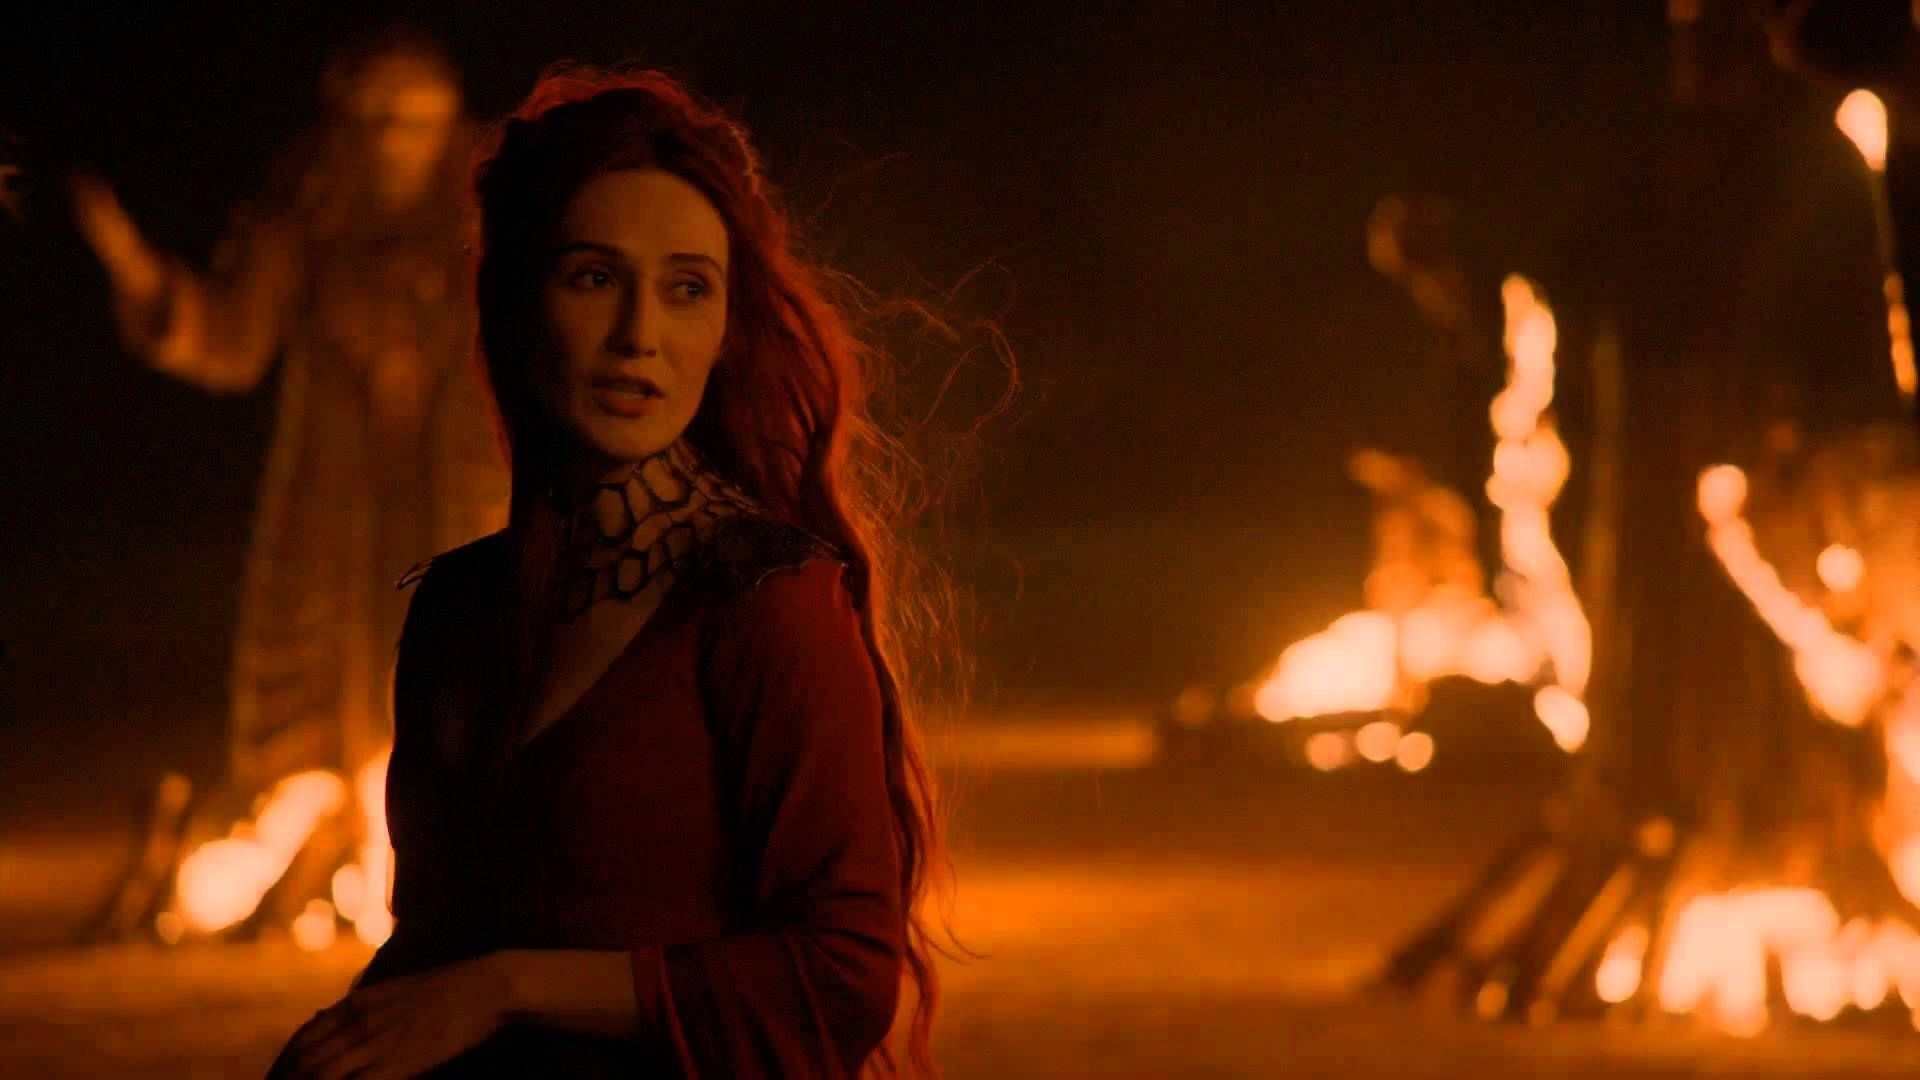 melisandre witch coming into revenge game of thrones 2015 Melisandre #Melisandre #WhiteWalkersGOT #WhiteWalkersNET